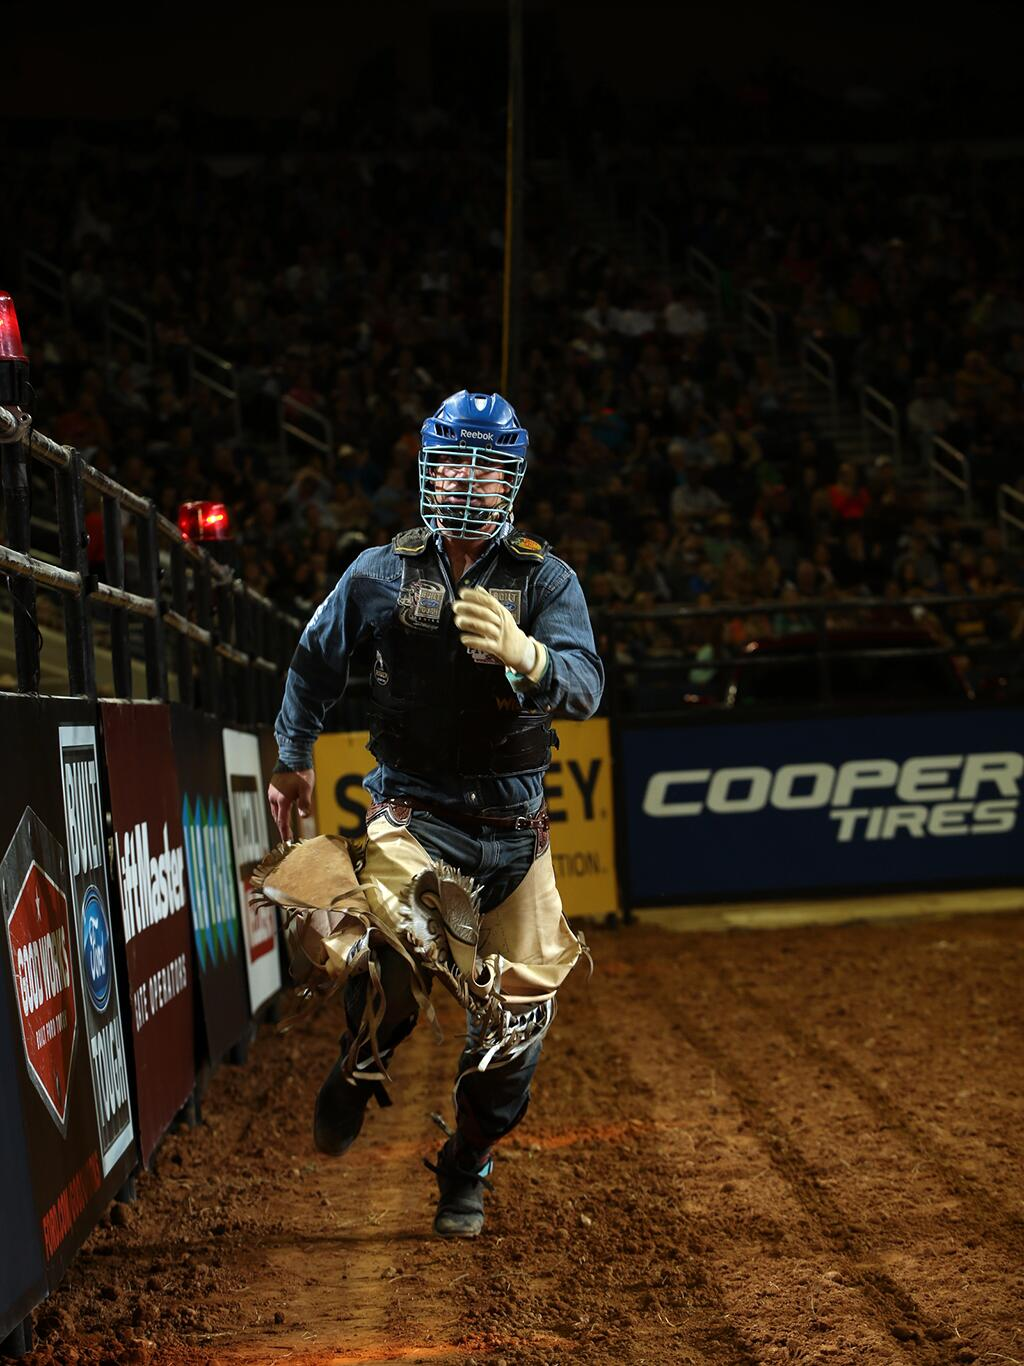 RT if you think @MikeLeePBR will ride Addiction and hustle his way around the dirt in celebration. #PBRSAC http://t.co/uOQvC08NOj